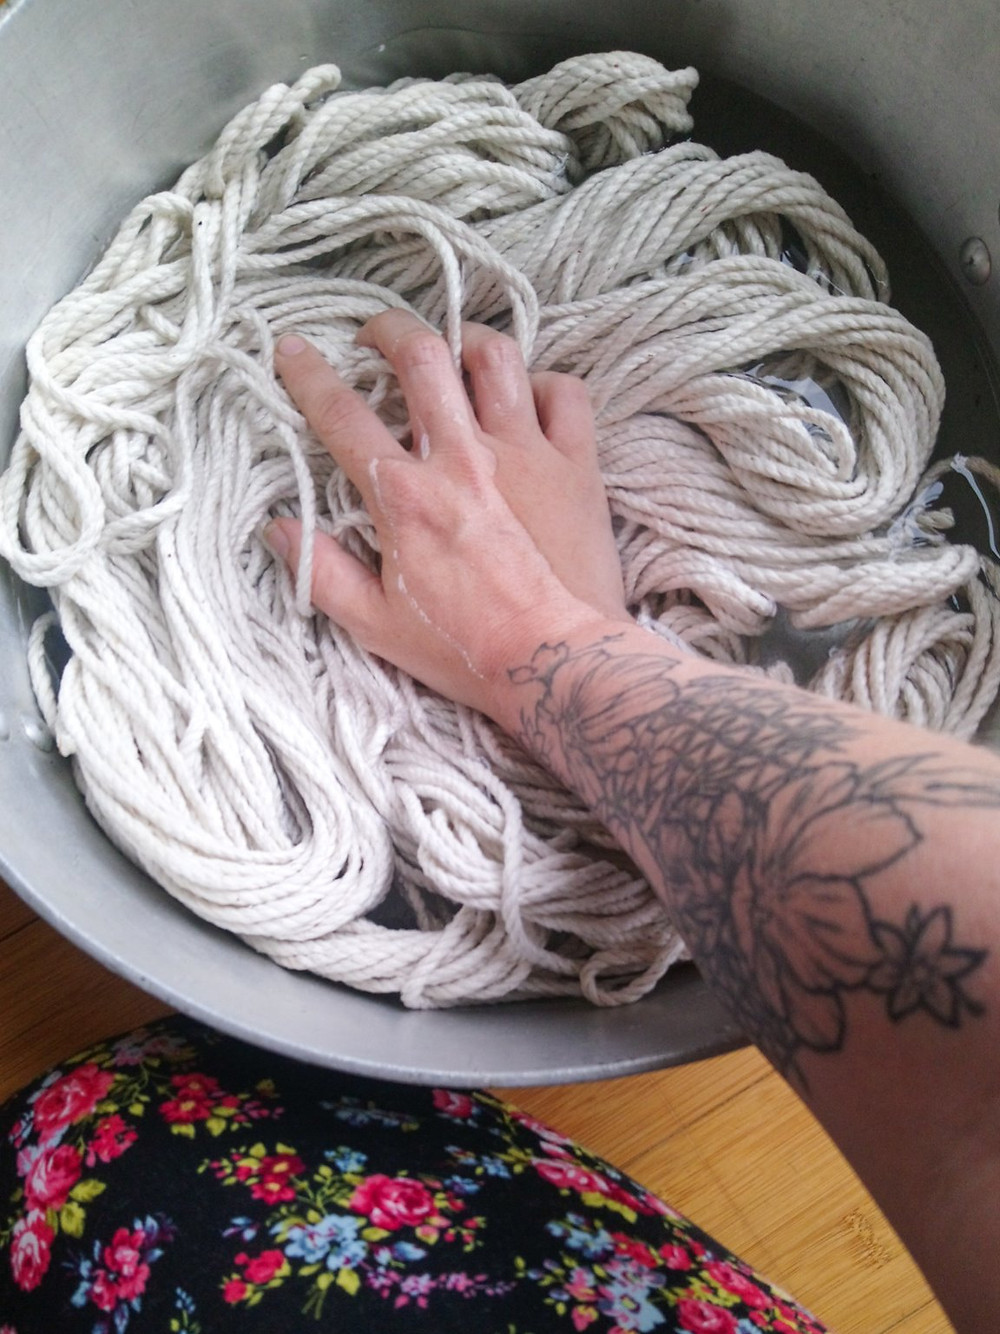 A photo of some rope submerged in water and being held down by a hand and tattooed arm.